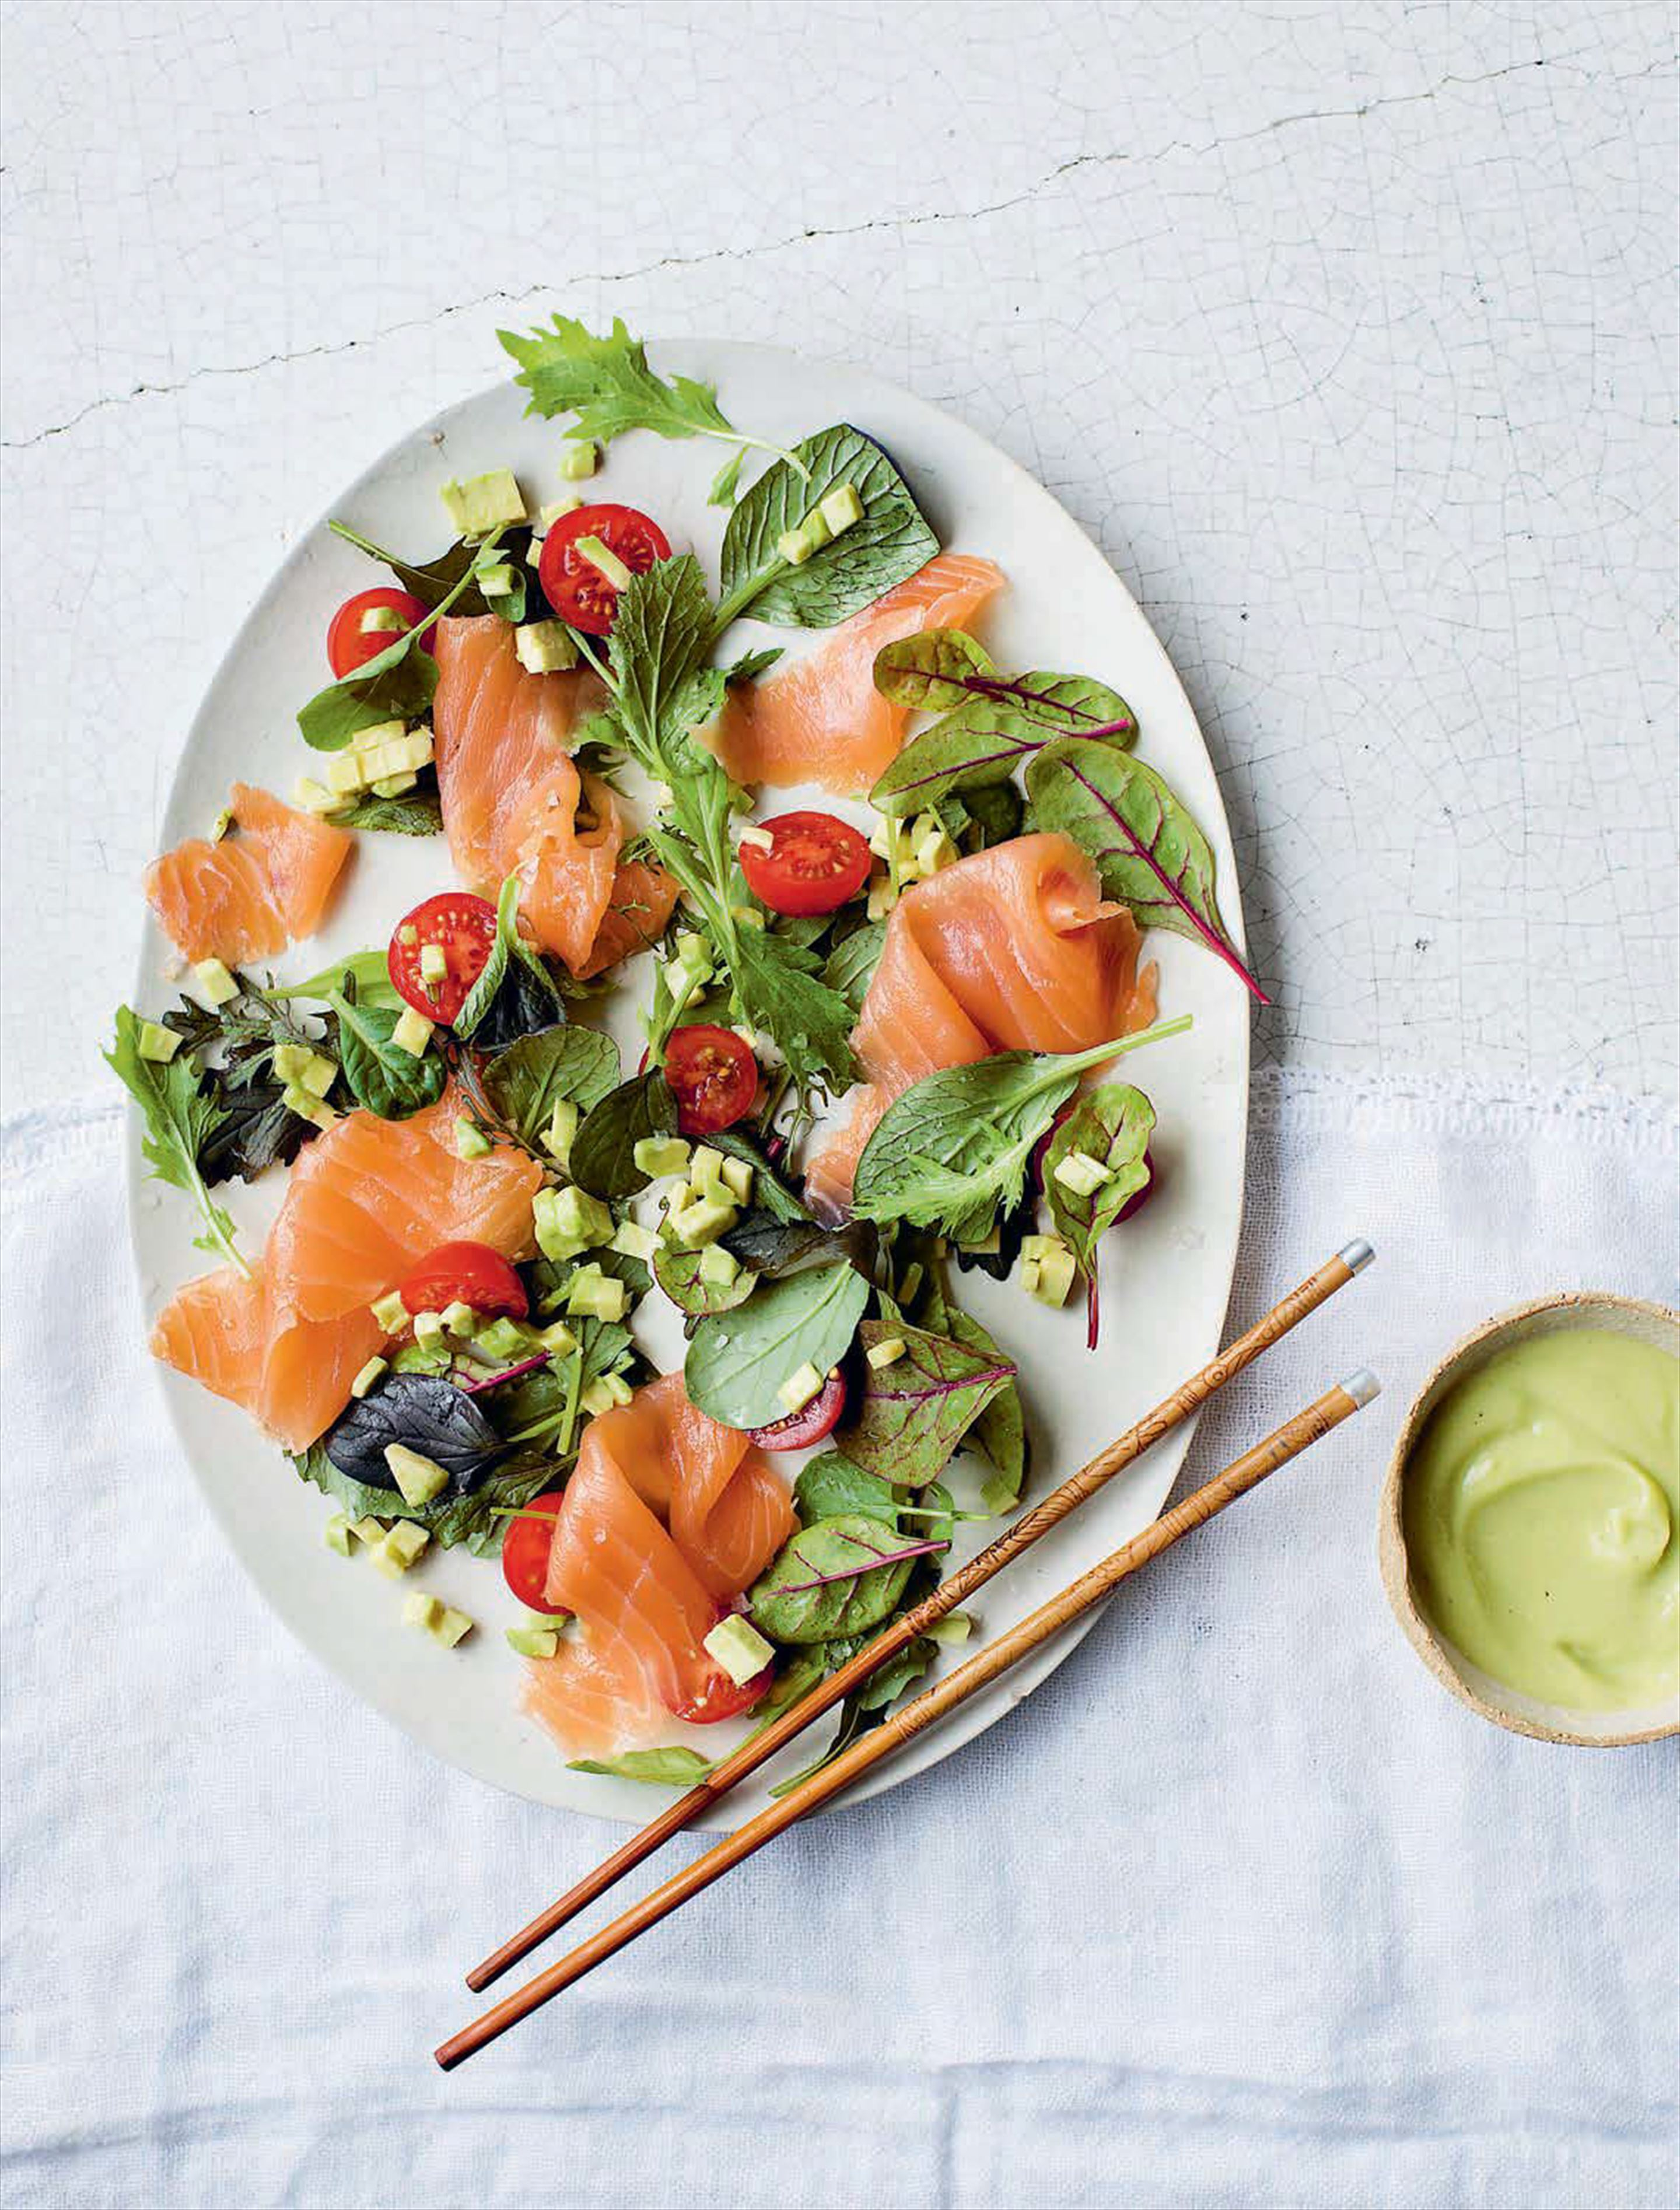 Avocado and smoked salmon salad